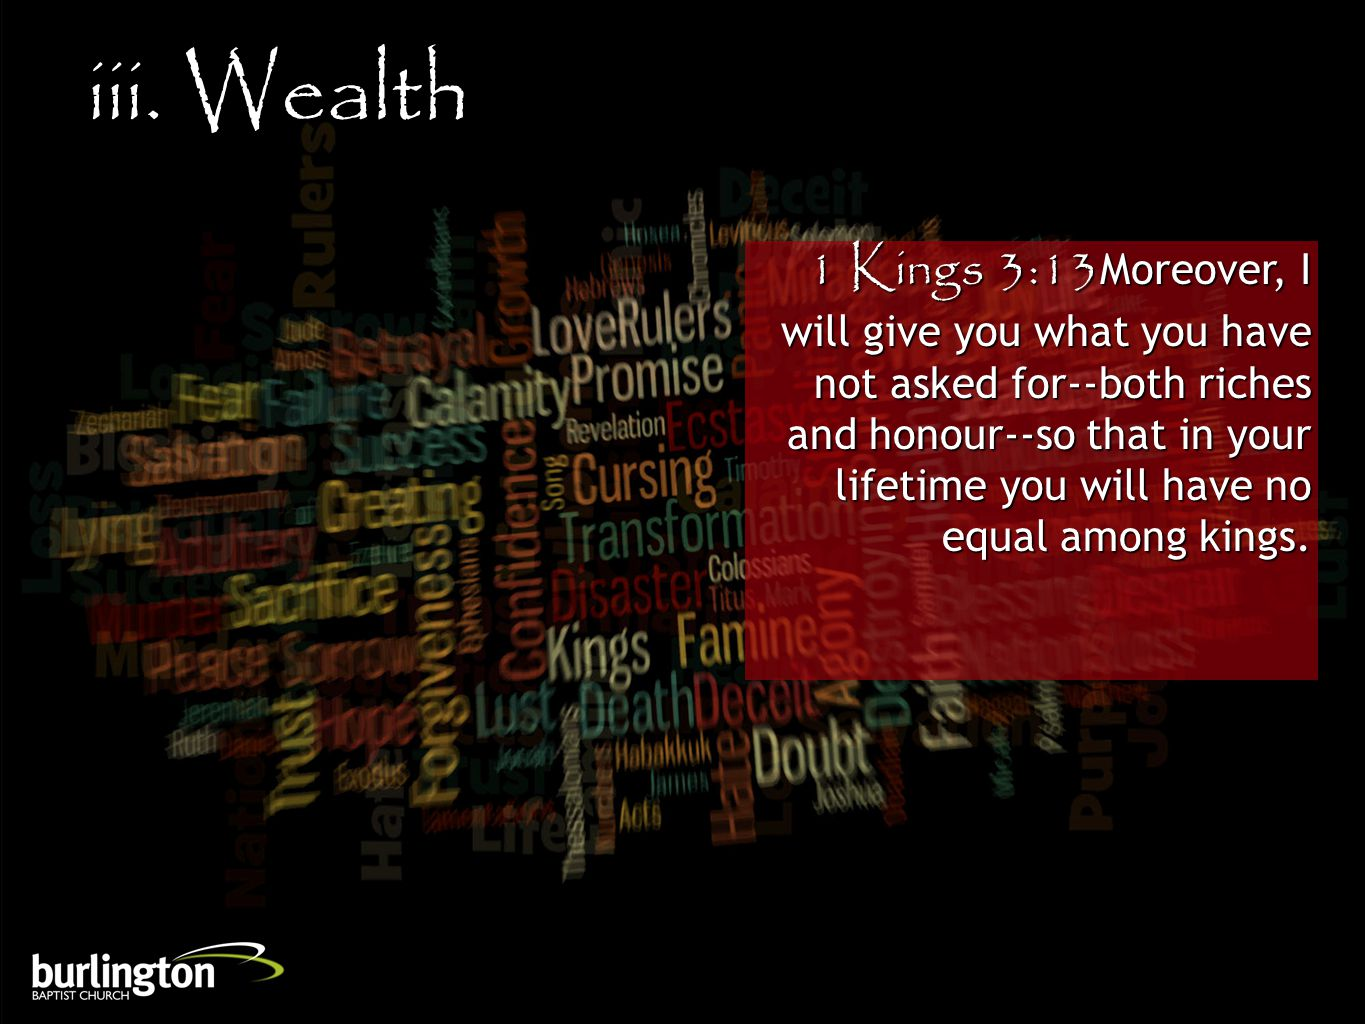 1 Kings 3:13Moreover, I will give you what you have not asked for--both riches and honour--so that in your lifetime you will have no equal among kings